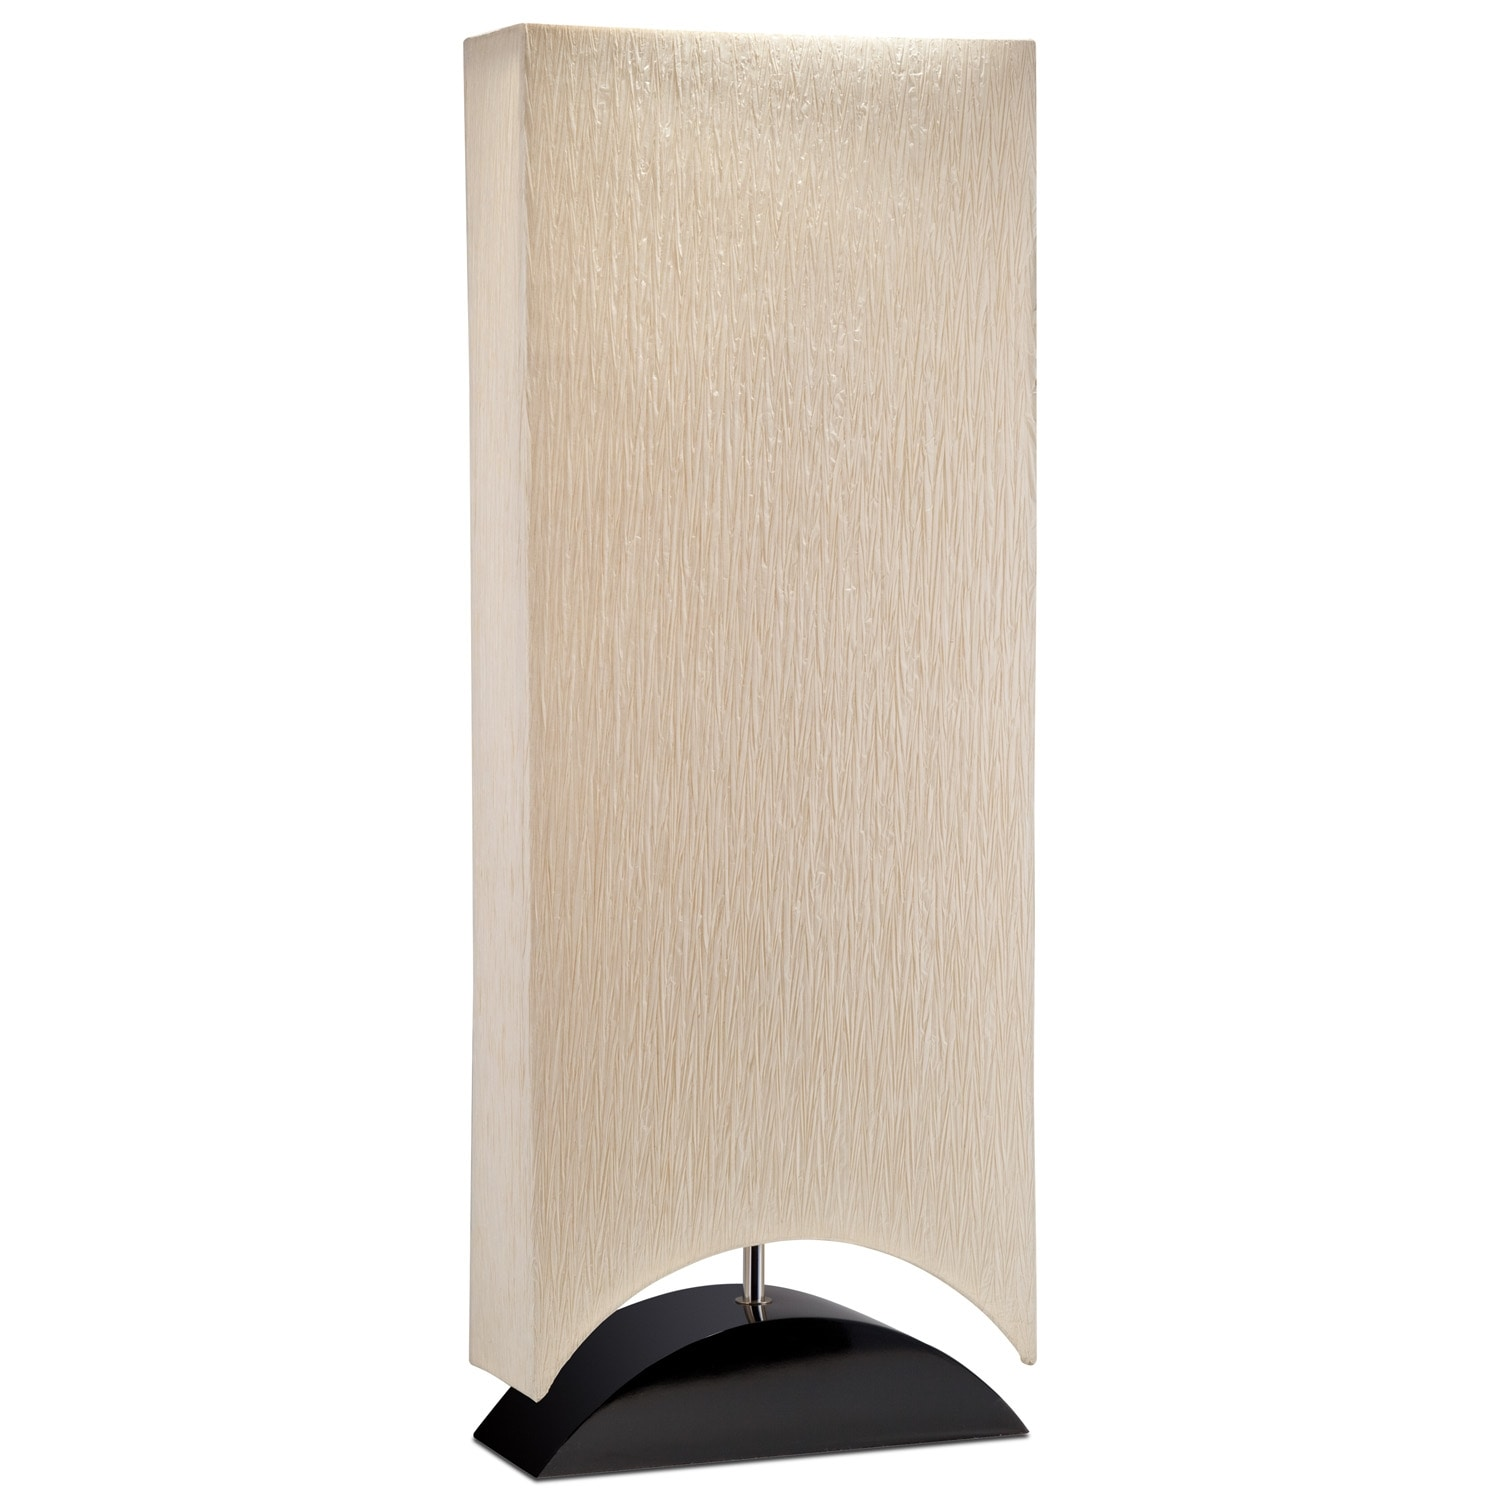 Paper Shade Lighting Floor Lamp - Value City Furniture